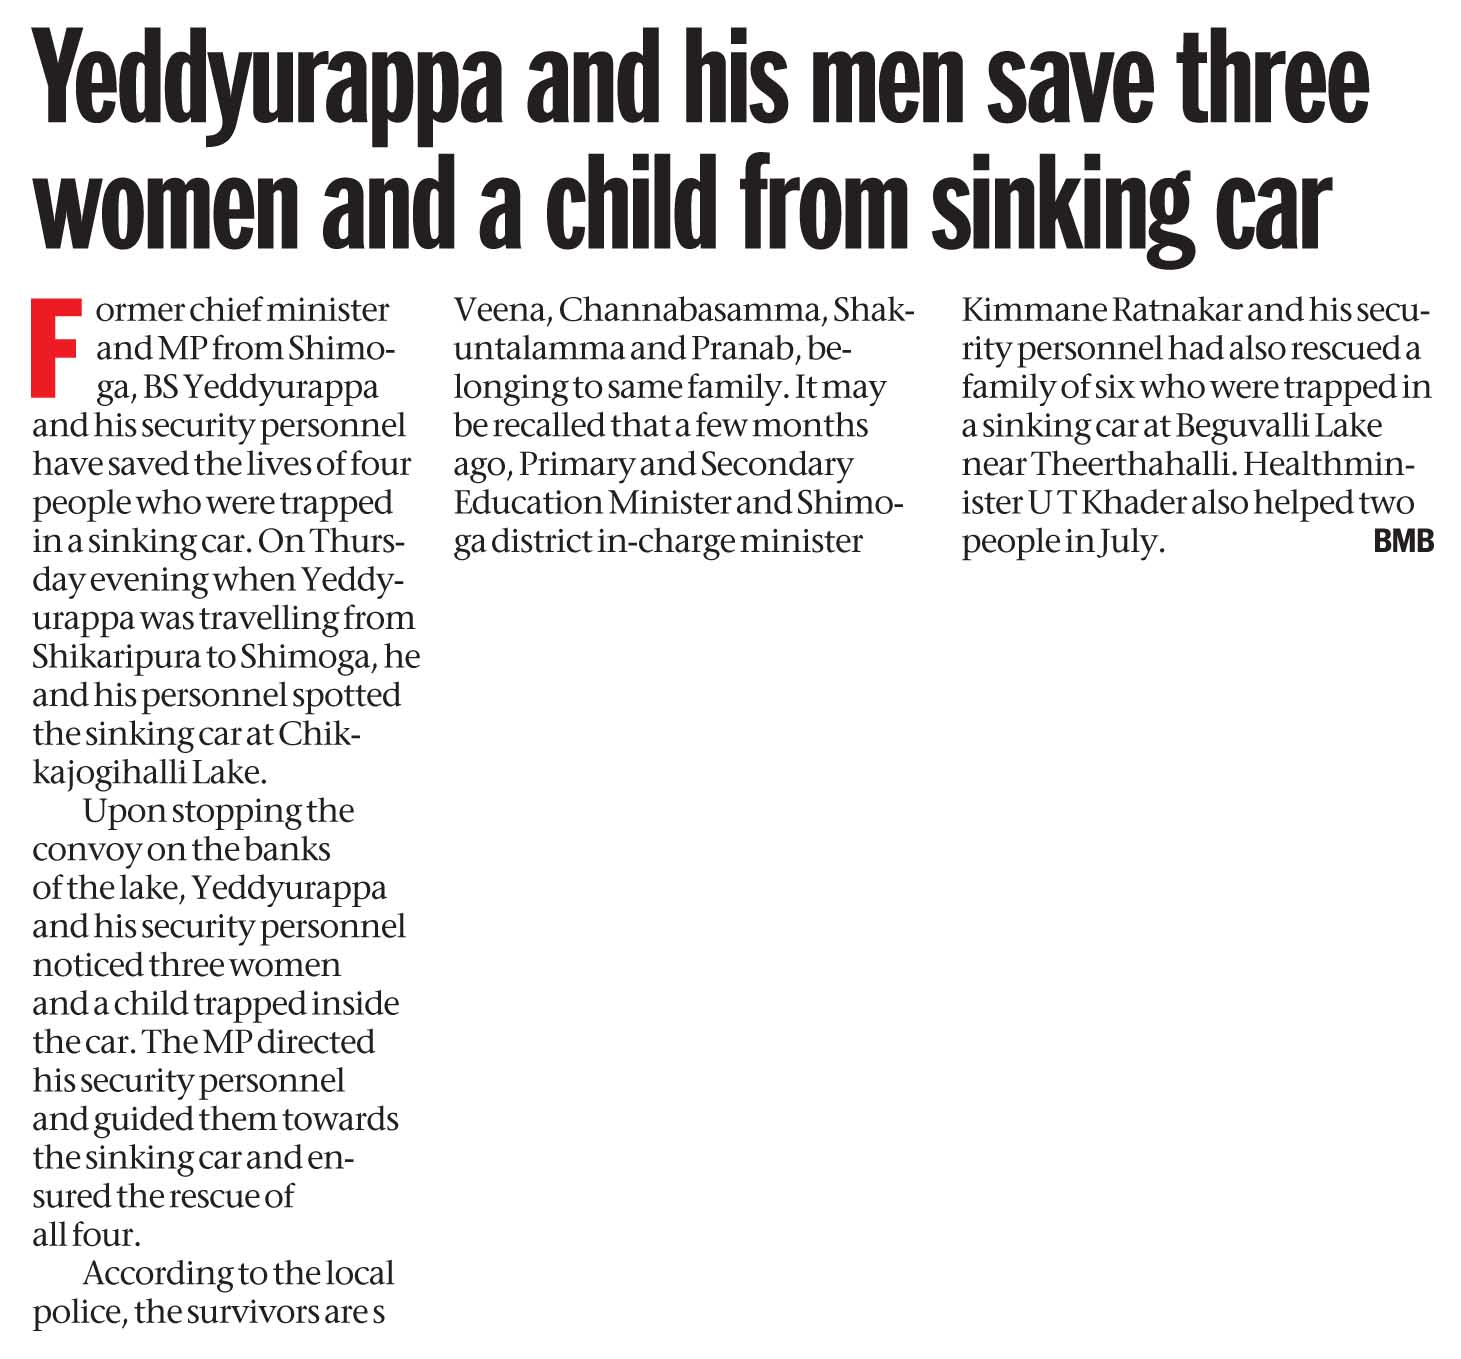 Yeddyurappa and his men save three women and a child from sinking car